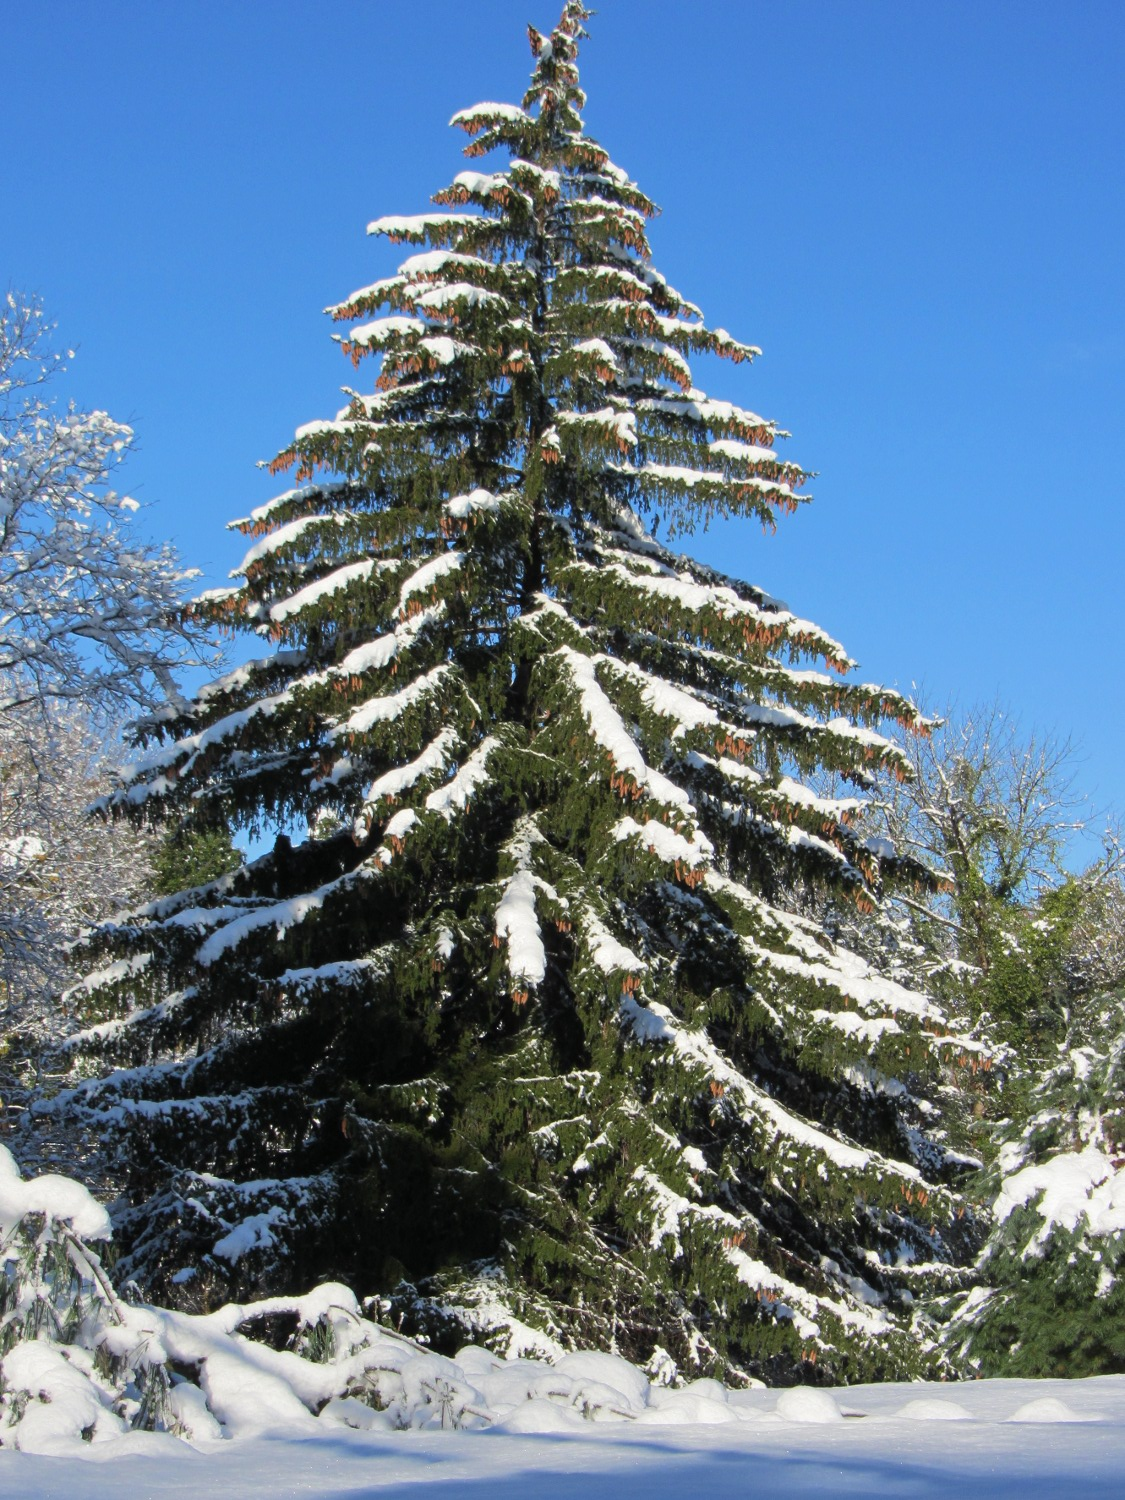 Merry christmas the smell of molten projects in the morning - Images of pine trees in snow ...